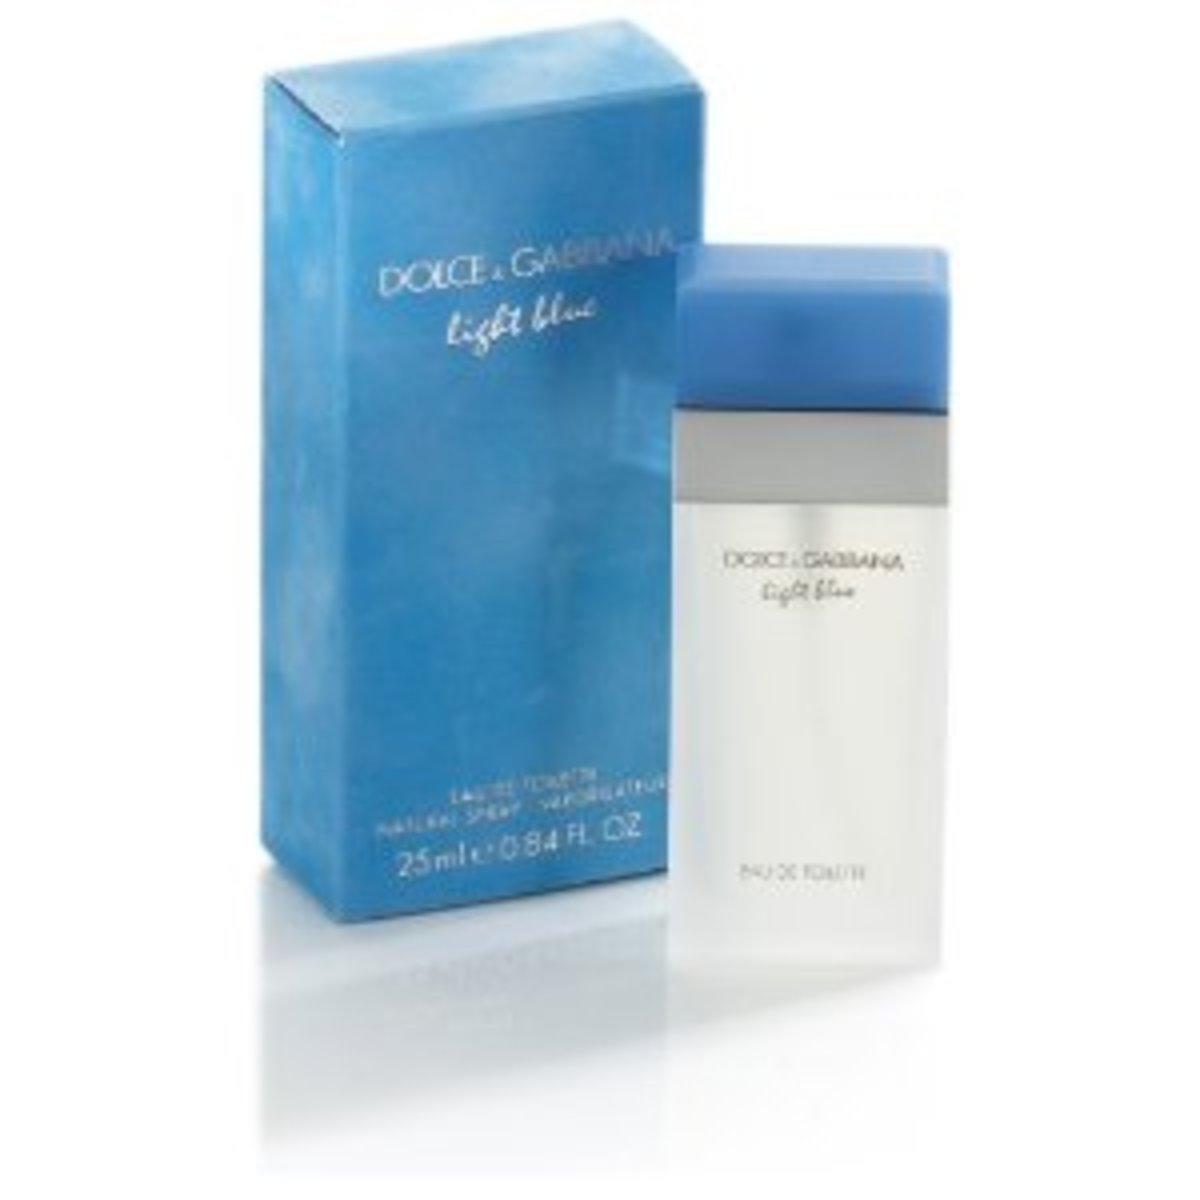 One of the best perfumes for women- Light Blue by Dolce & Gabbana.